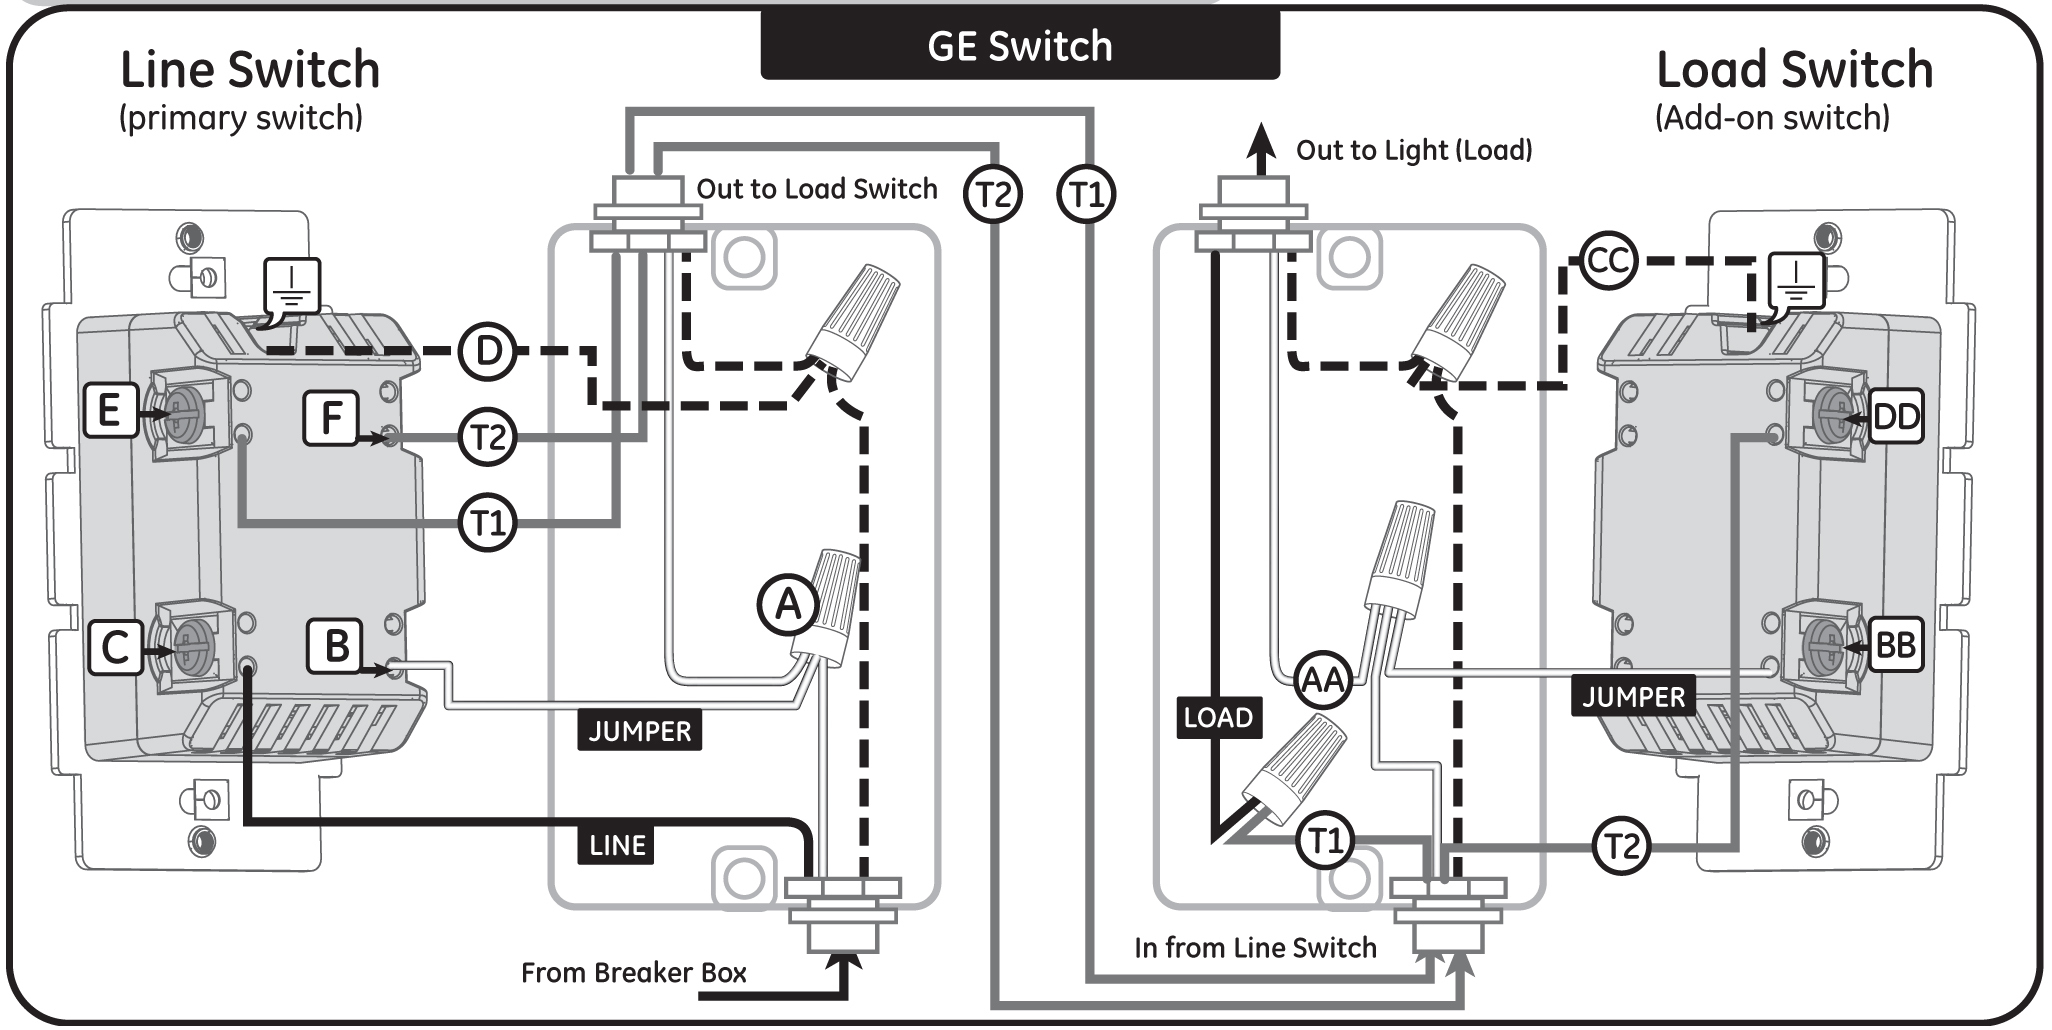 3 Way Dimmer Wiring Single Pole Wiring Diagram For A As | Best - 3 Way Dimmer Switches Wiring Diagram